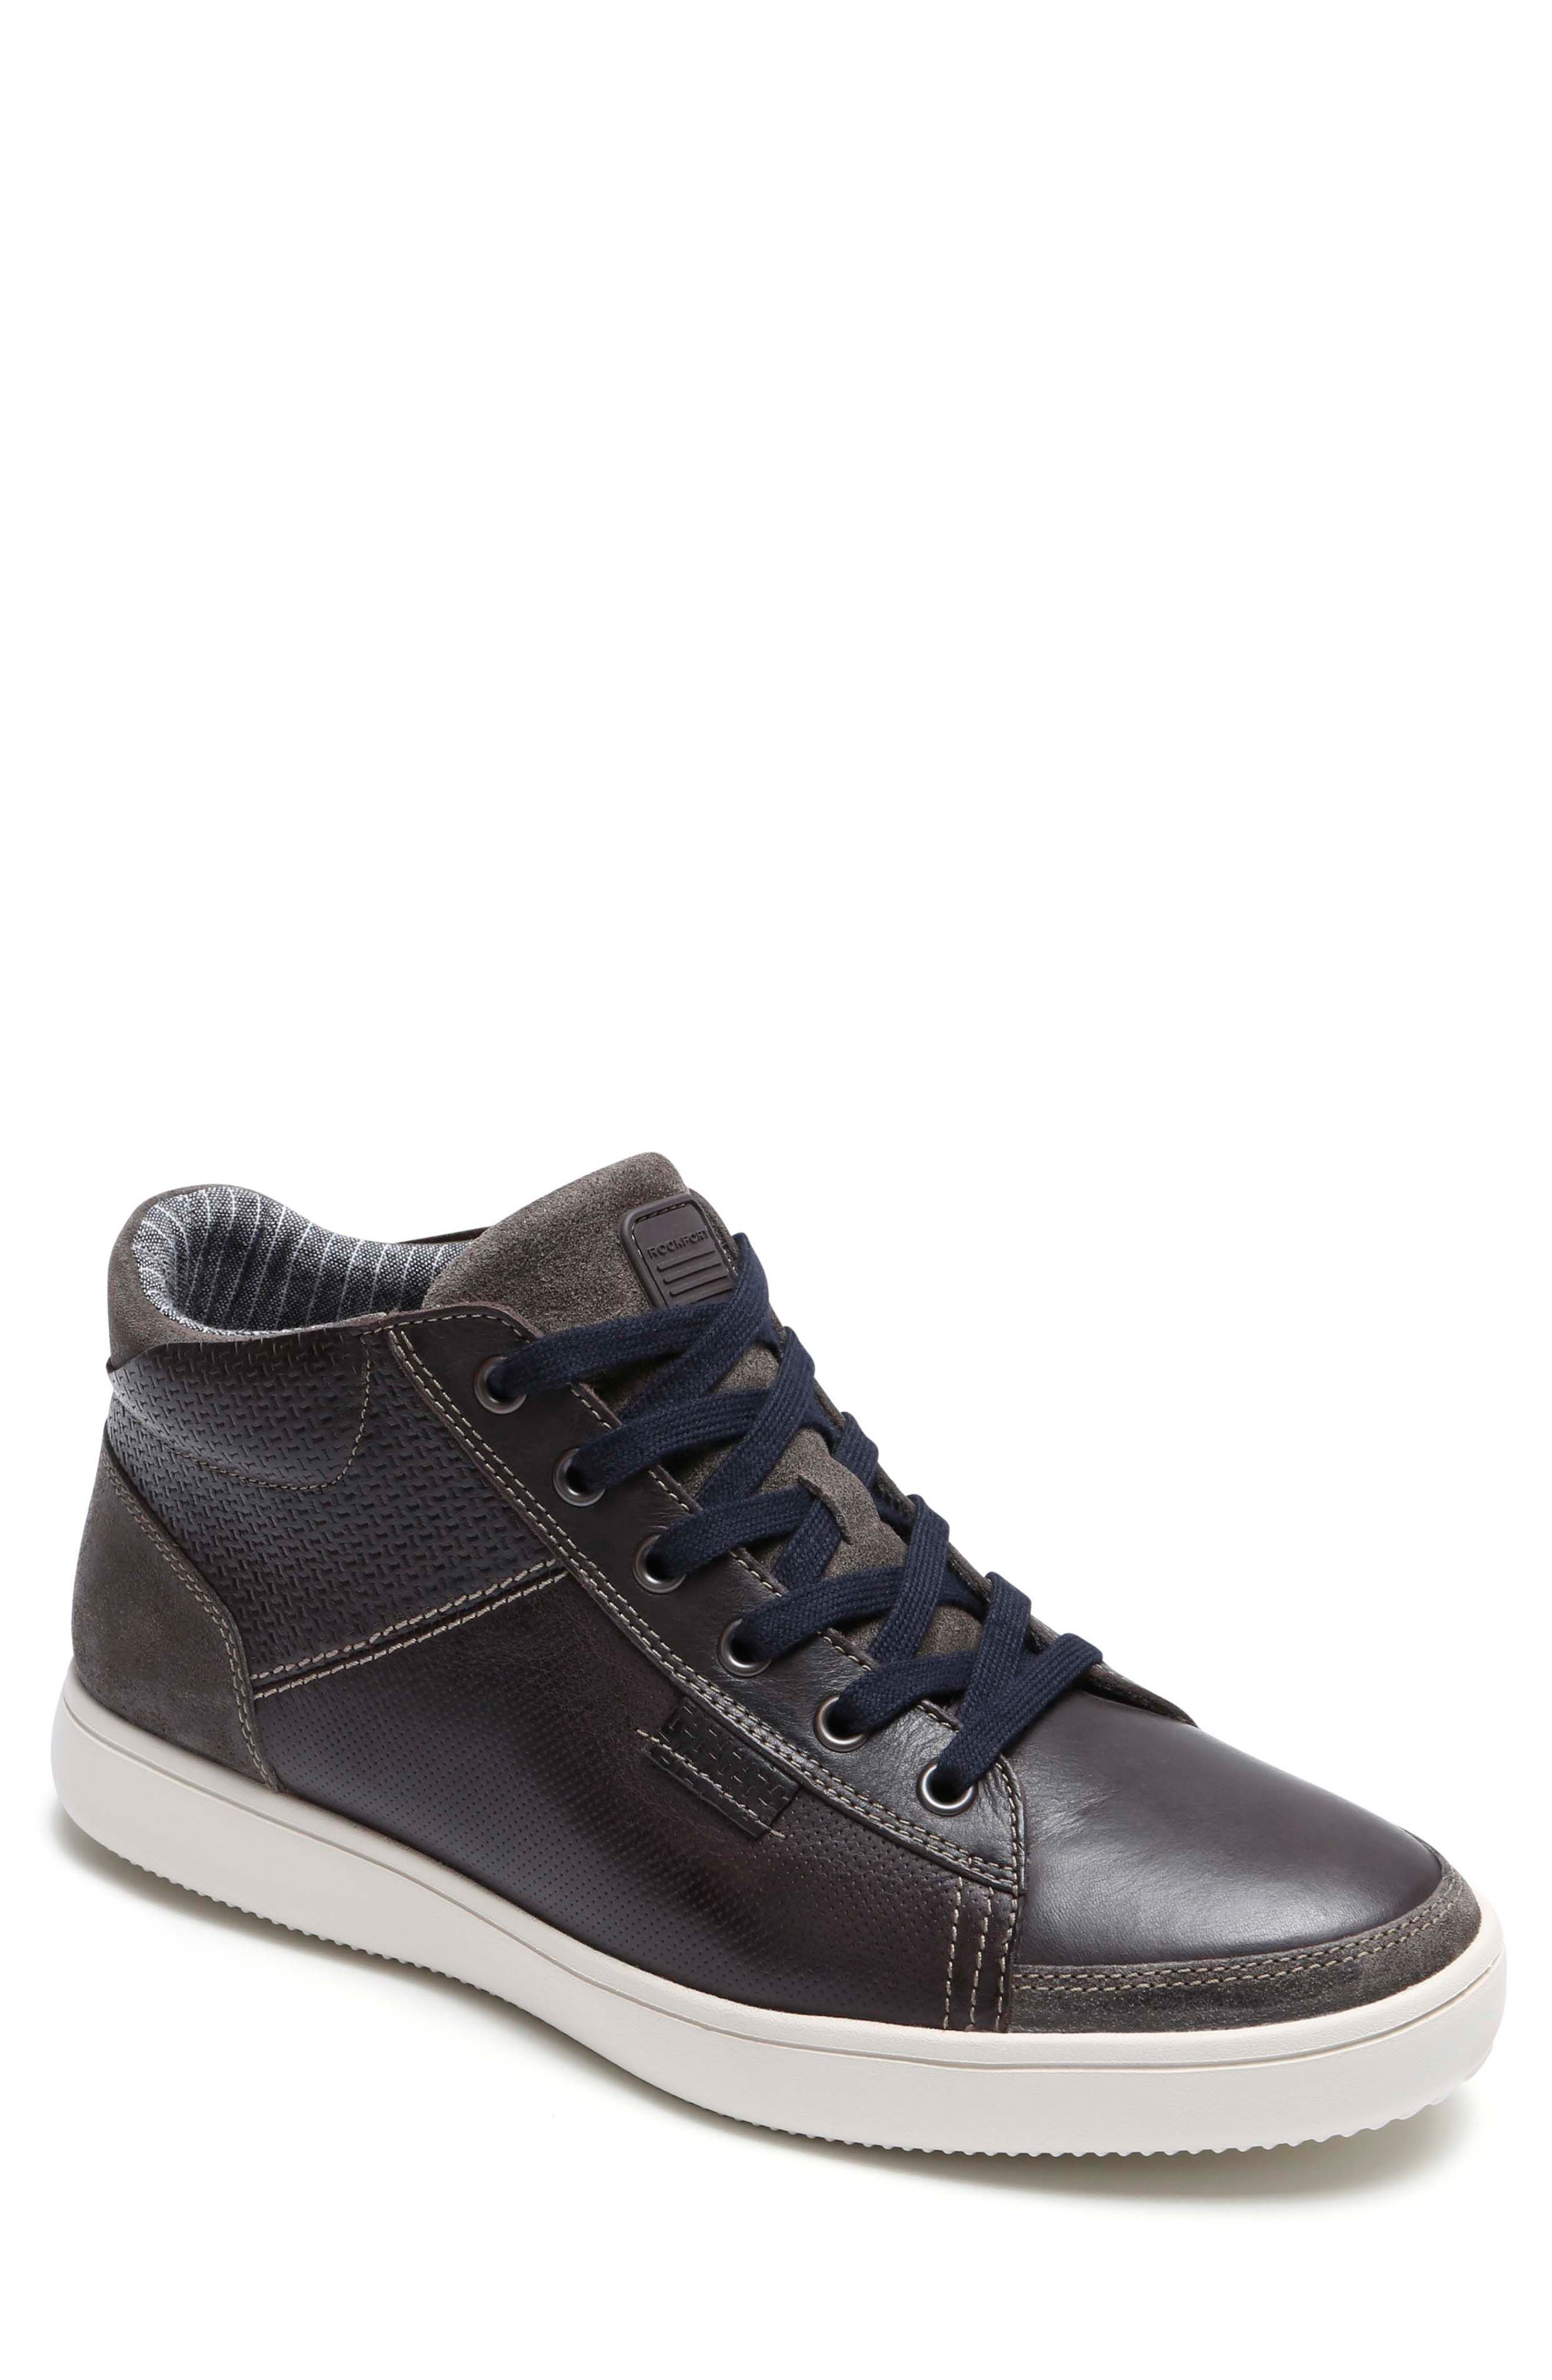 Colle Sneaker,                             Main thumbnail 1, color,                             COFFEE LEATHER